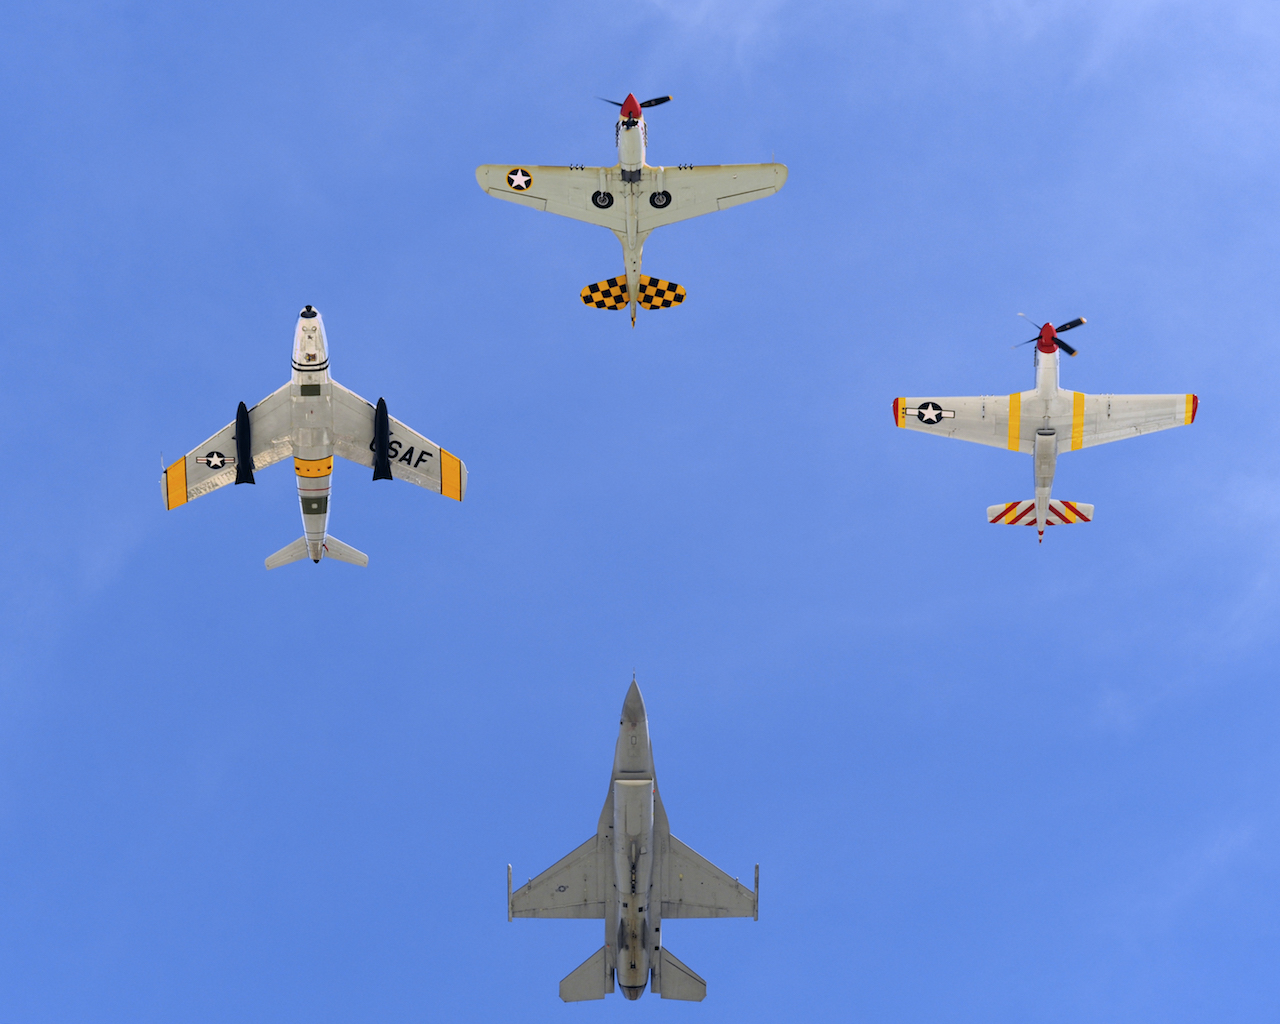 A U.S. Air Force F-16 Fighting Falcon (bottom) joins in formation with a P-40 Warhawk (top), P-51 Mustang (right), and a F-86 Sabre Jet (left) over Davis-Monthan Air Force Base, Ariz., during Heritage Flight Training Course March 2, 2014. During the course aircrews practiced ground and flight training to allow civilian pilots of historic military aircraft and current Air Force fighter pilots to safely fly in formations together, in preparation for the upcoming Open House. (U.S. Air Force photo by Airman 1st Class Chris Massey/ Released)